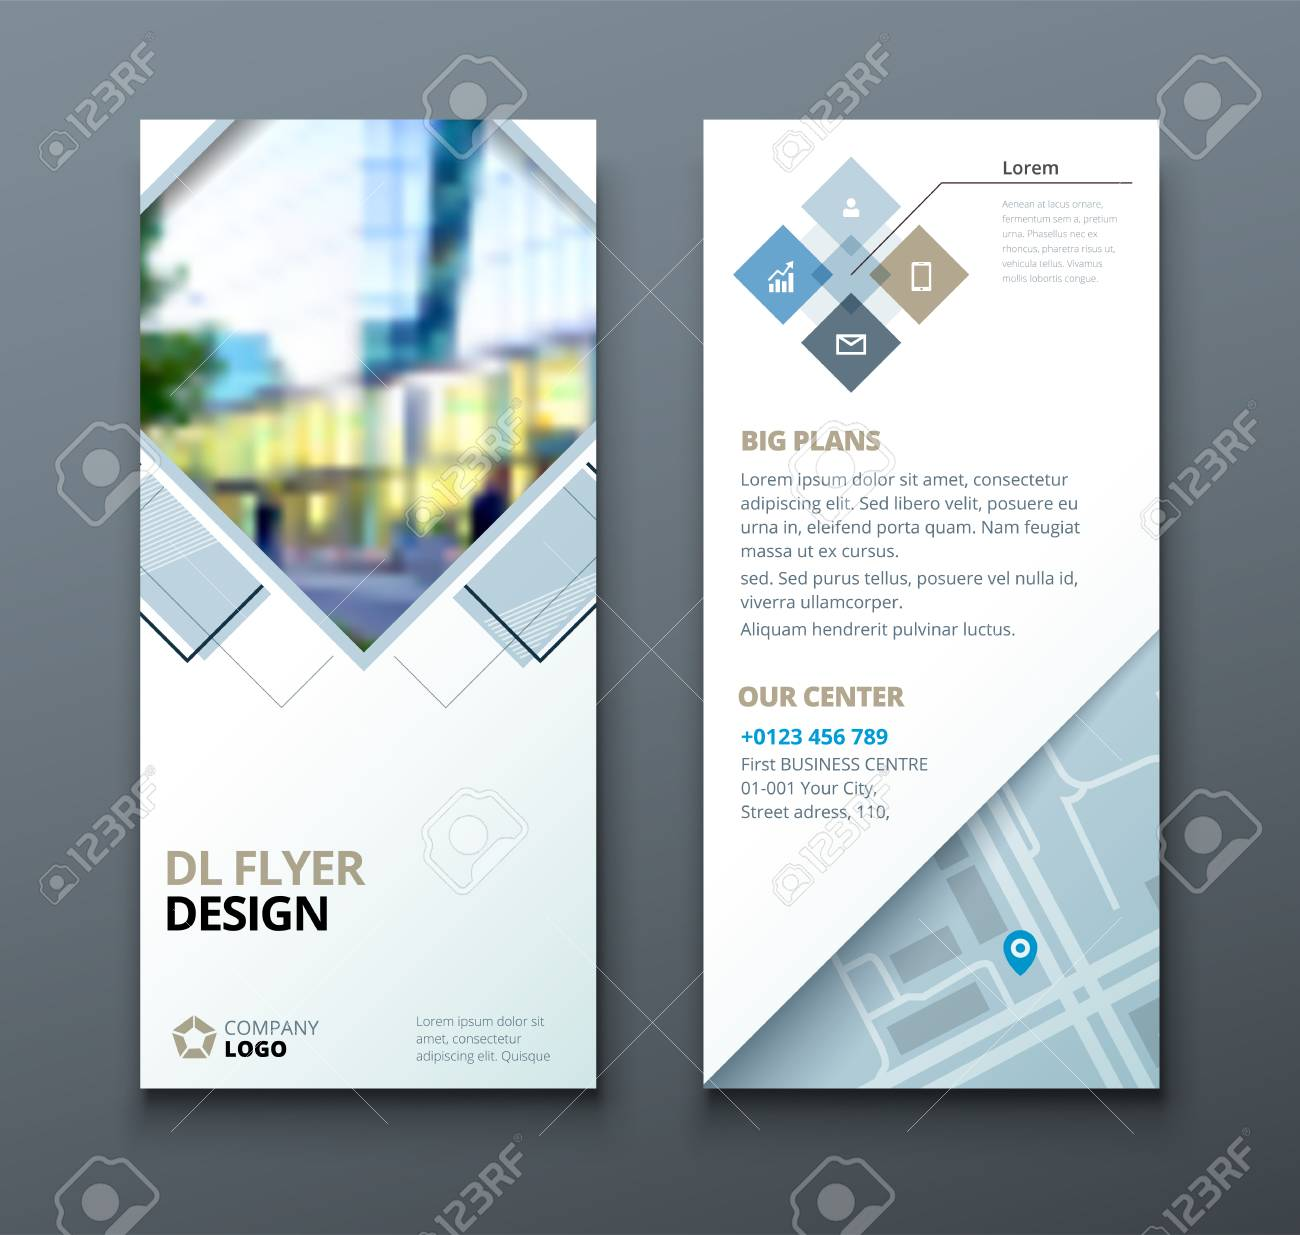 Tri Fold Brochure Design  Corporate Business Template For Tri     Tri fold brochure design  Corporate business template for tri fold flyer  with rhombus square shapes